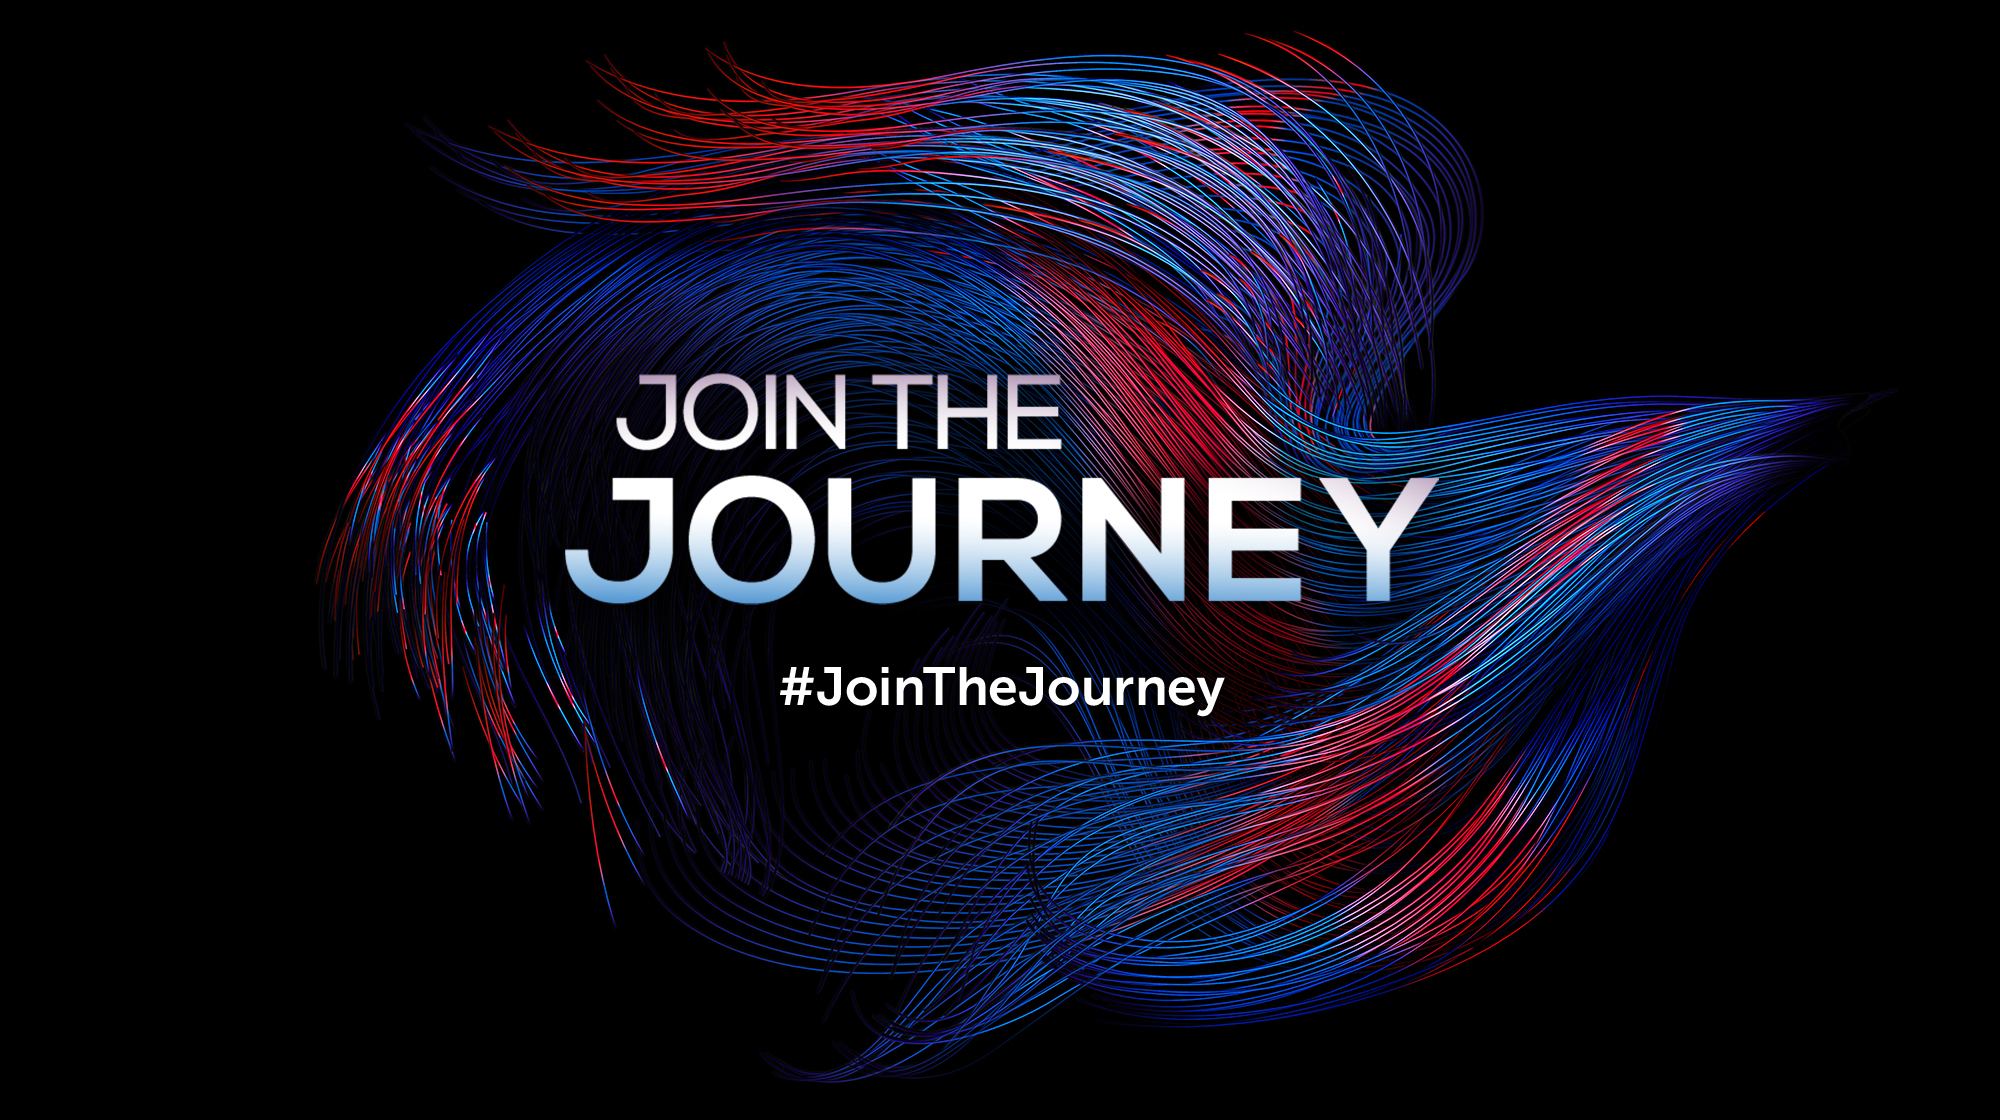 Join the Journey creative. Earnie creative design